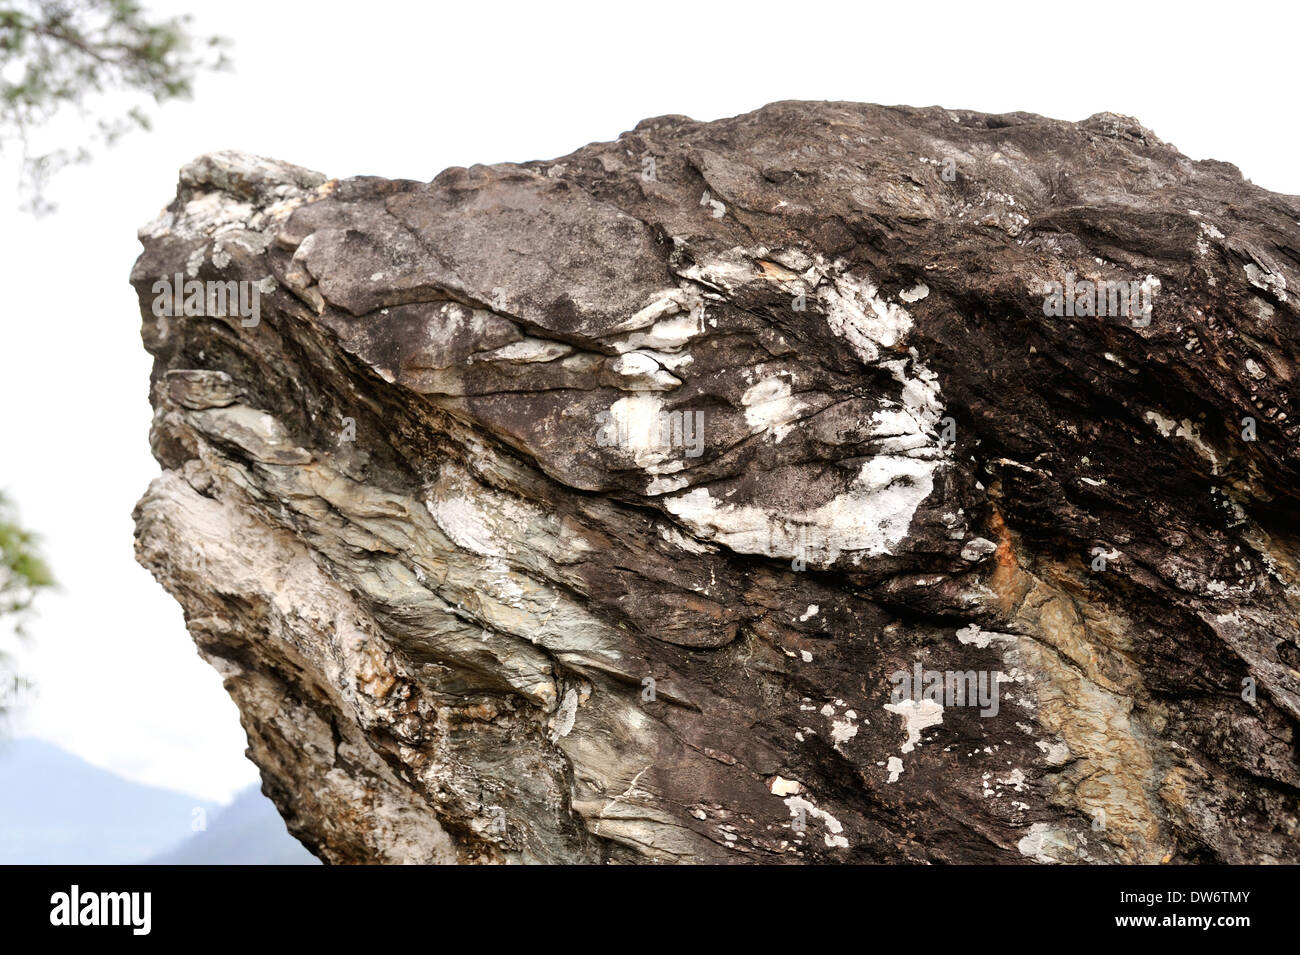 Rock formation which is believed to resemble a frog's head with an eye drown on the surface, Eastern Bhutan - Stock Image